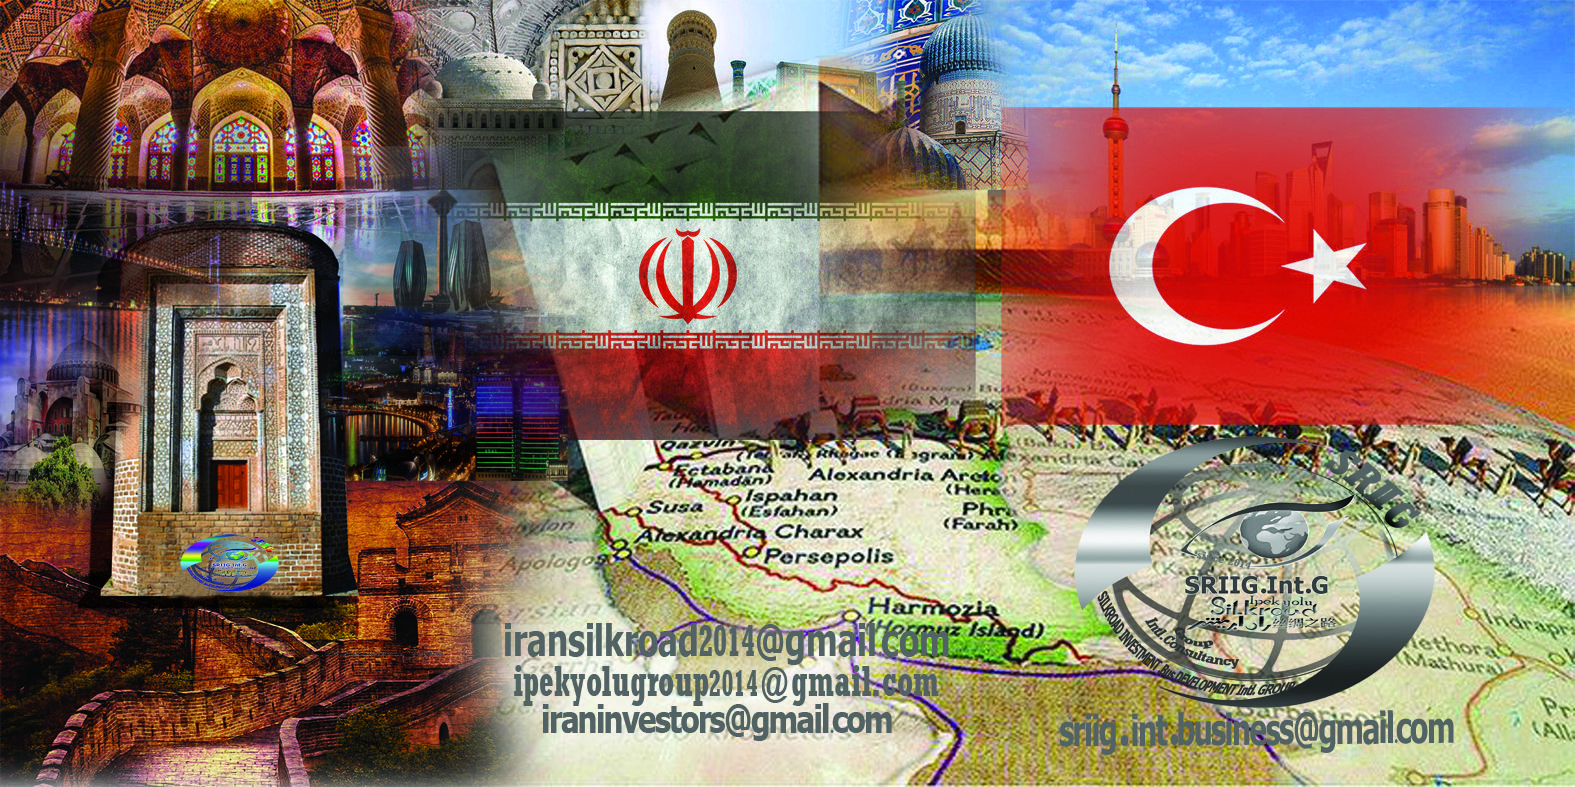 Intl.Foreign Iran Invest&Investors Iranians Abroad Intl Conference In Iran(IRAN INVESTMENT SUPPORT GUIDE&LEADERSHIP SRIIG Int.G)Iran Turkey SILKROAD Ipekyolu Ceo BaşkanI M.Mousazadeh FDI Invest In IRAN Freezones&Provinces Opportunities(Invest&TURKEY&Business IRAN Advisory)دکتر موسی زاده گروه سرمایه گذاری راه ابریشم(ایران) مشاور عالی سرمایه گذاری